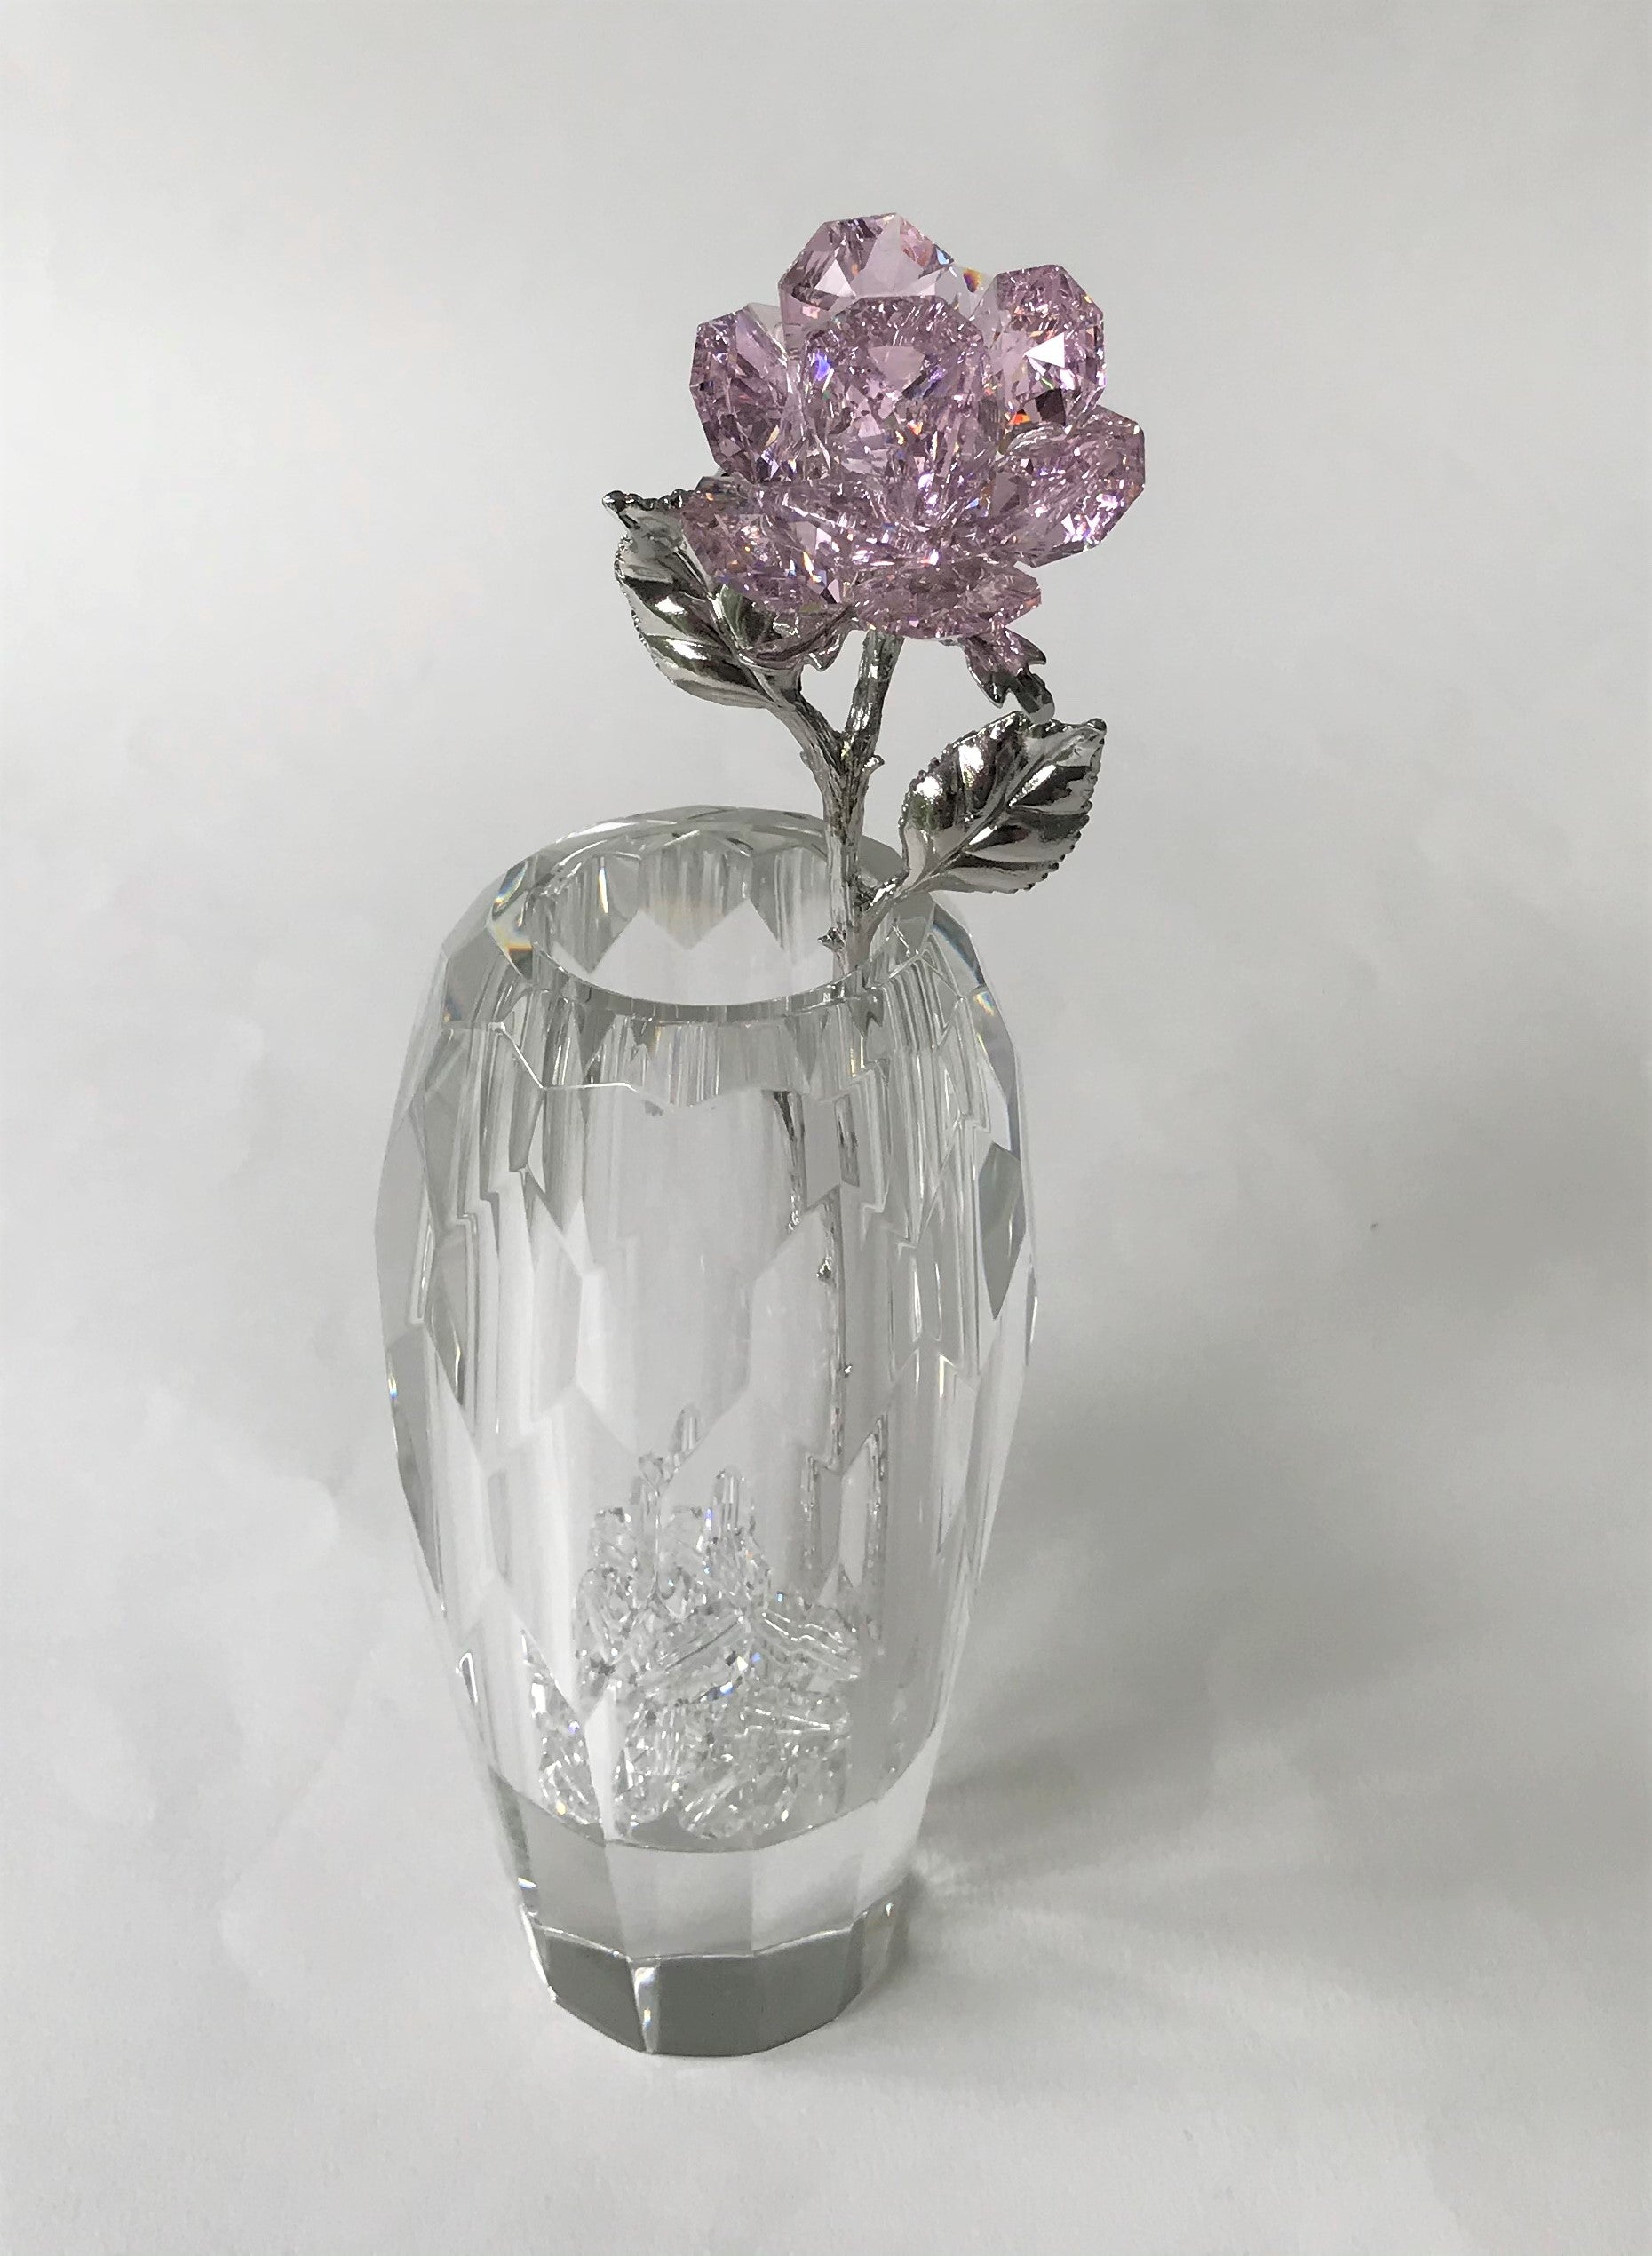 Pink Crystal Rose Handcrafted By Bjcrystalgifts Using Swarovski Crystals In A Faceted Crystal Vase